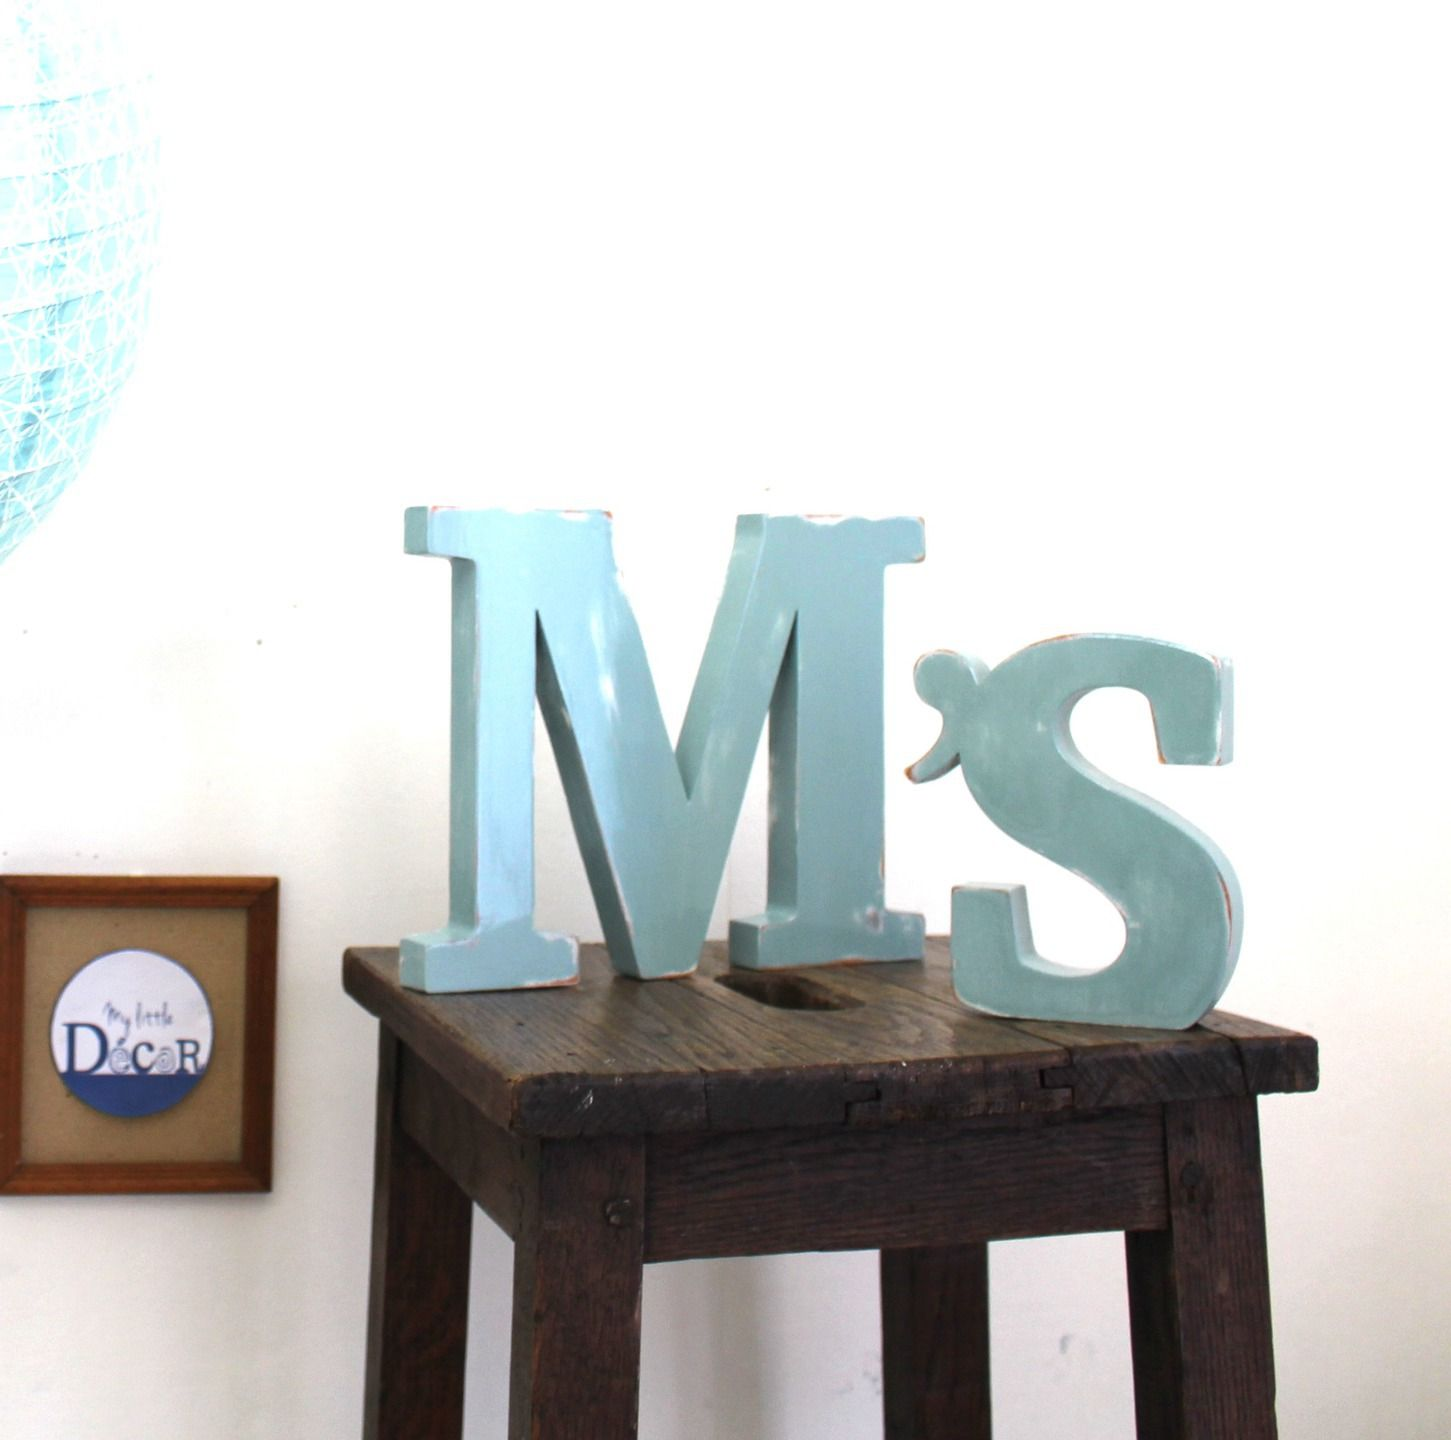 lettres en bois m 39 s poser bleu baltique mariage d coration mylittledecor initiale. Black Bedroom Furniture Sets. Home Design Ideas